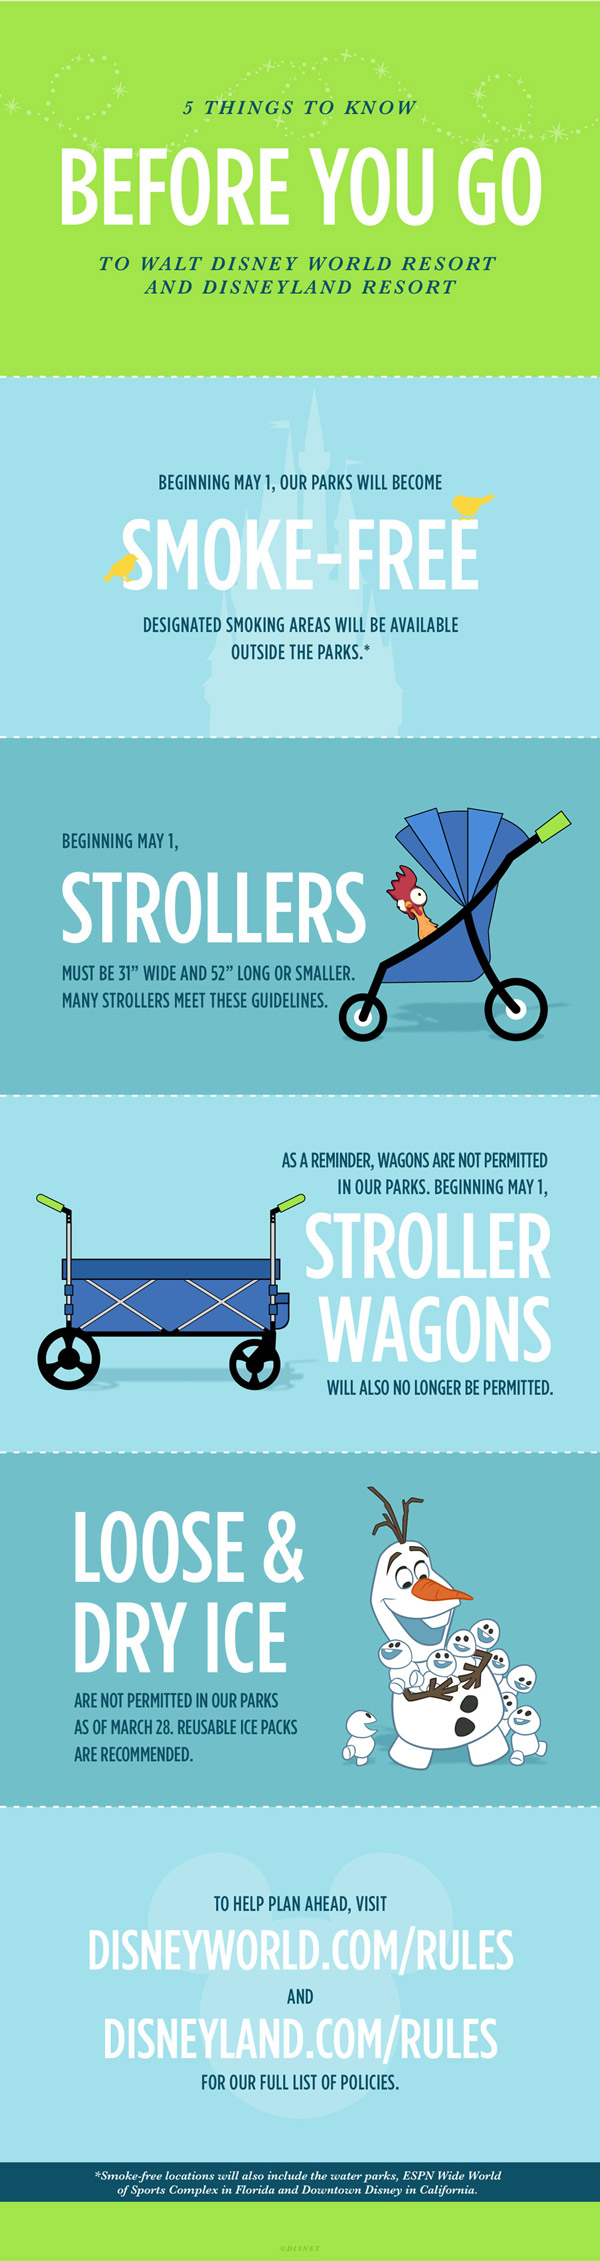 Disney's five tips to remember when visiting Disney parks. Credit: Disney